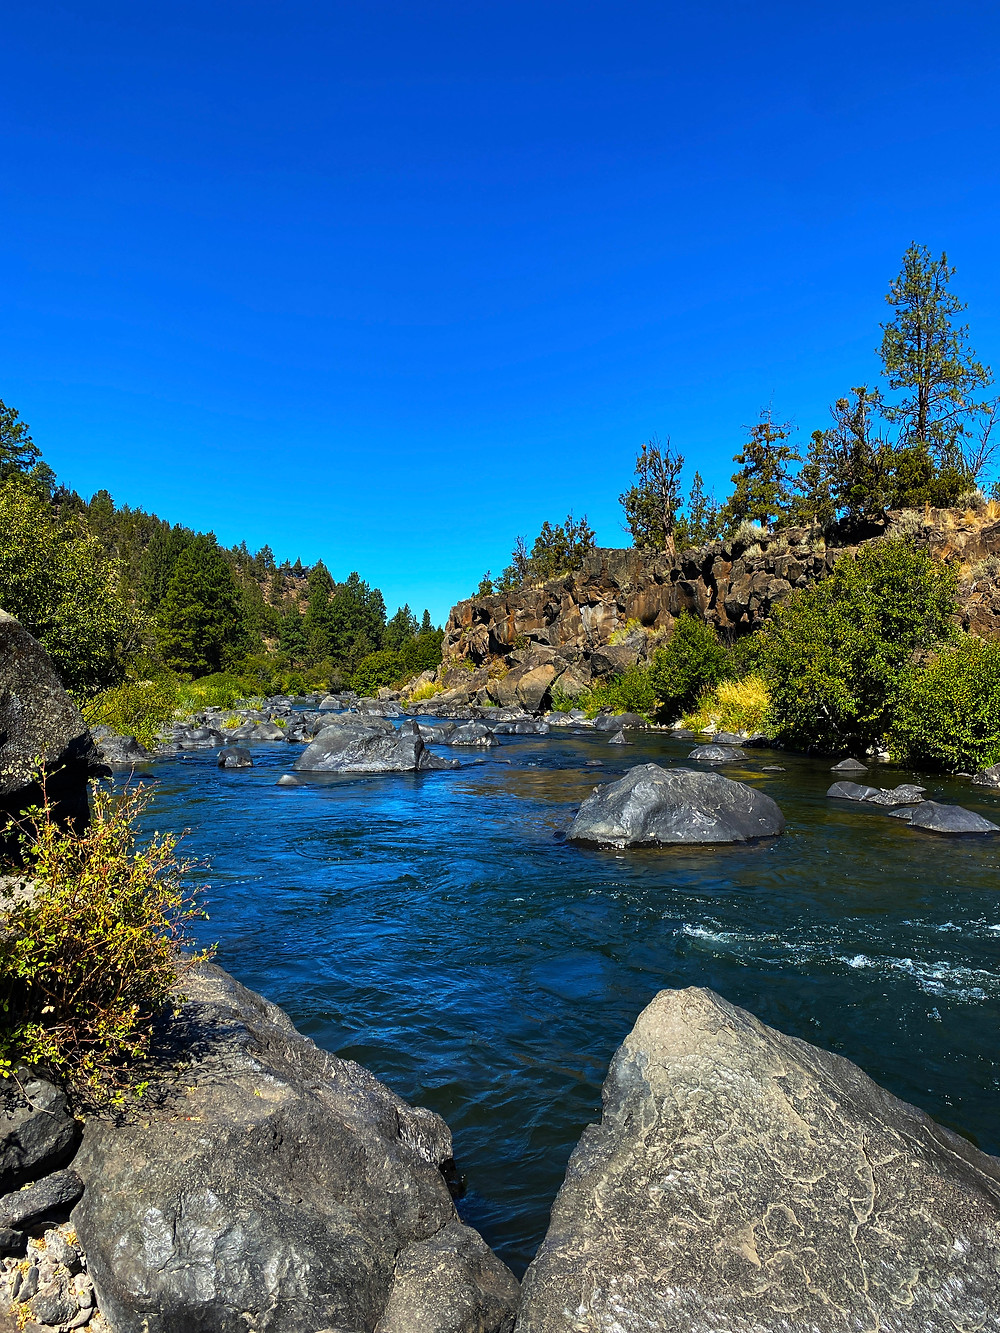 Blue skies over blue waters of the rocky, wooded Deschutes River in Deschutes National Forest, OR